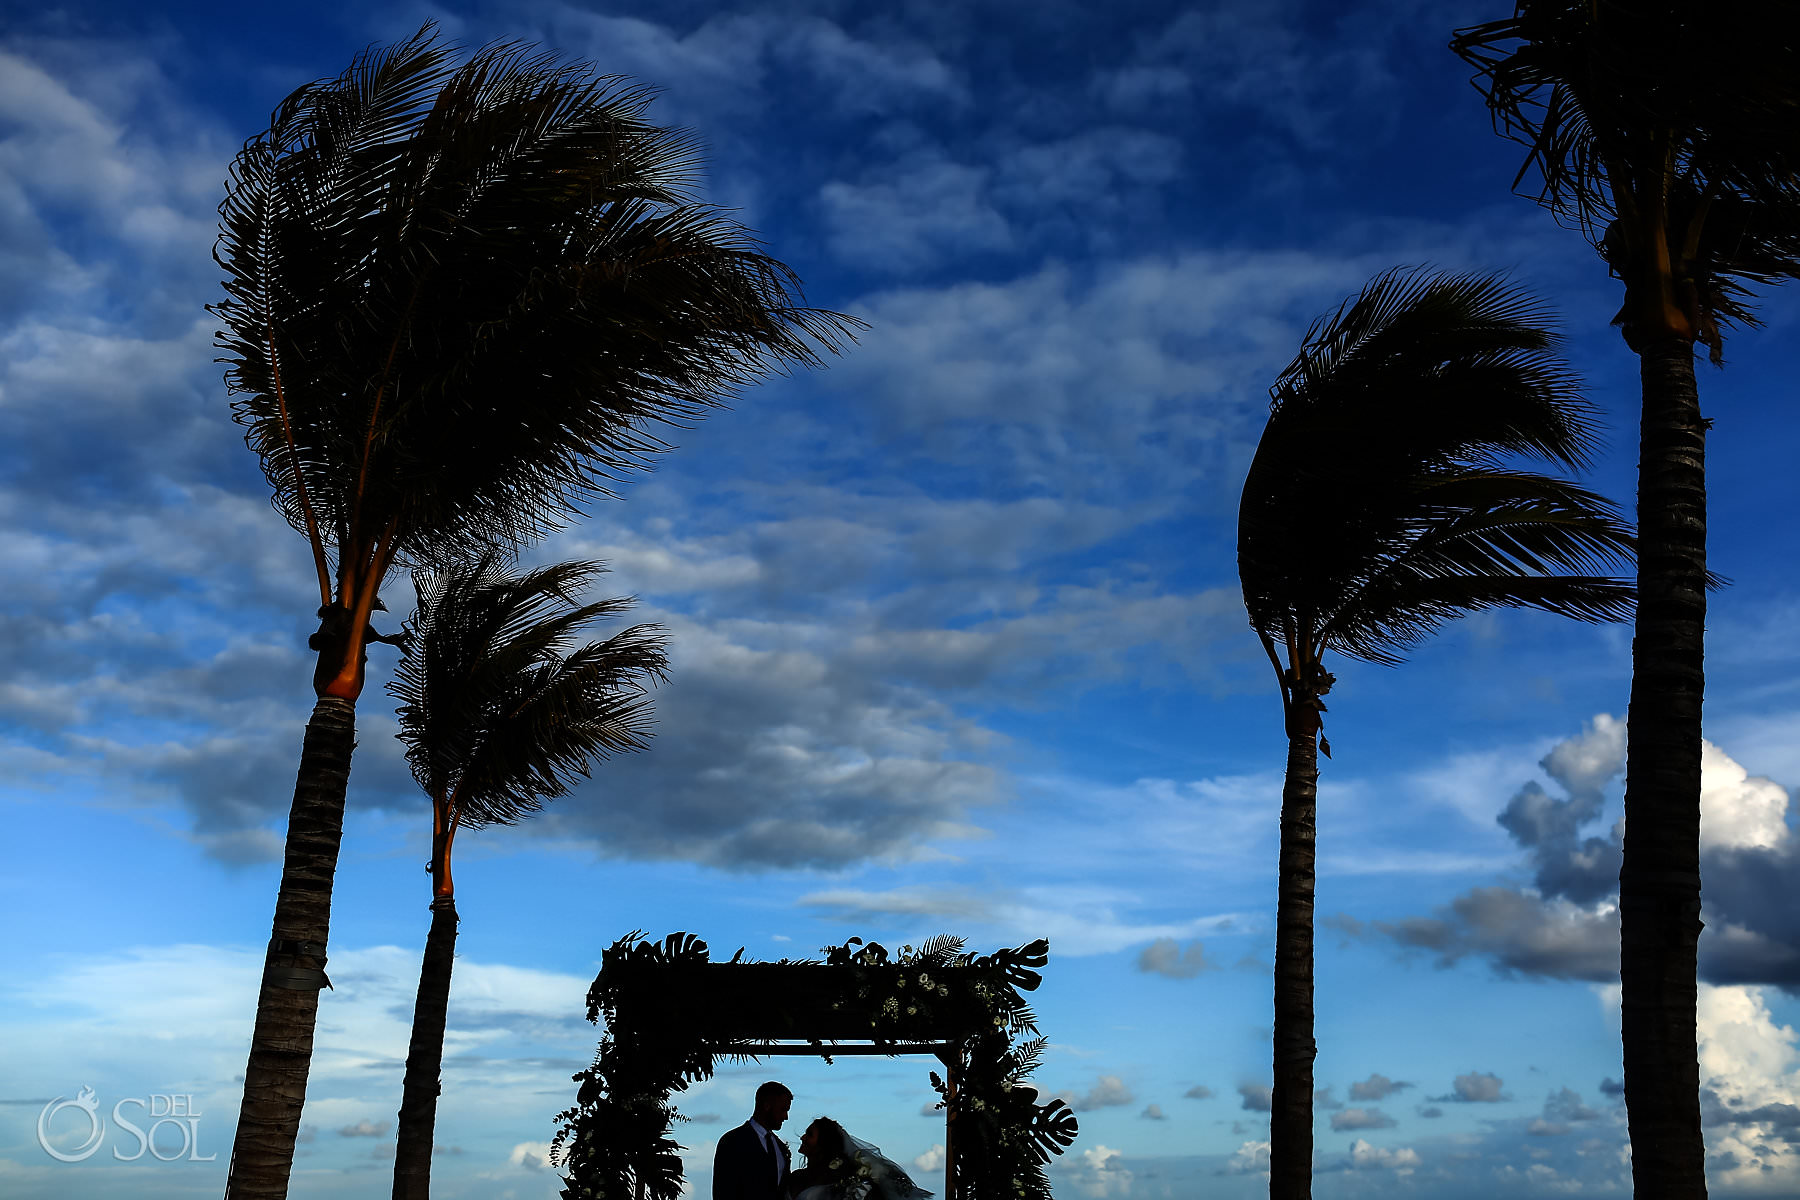 Artistic silhouette beach wedding ceremony Hotel Xcaret Playa del Carmen